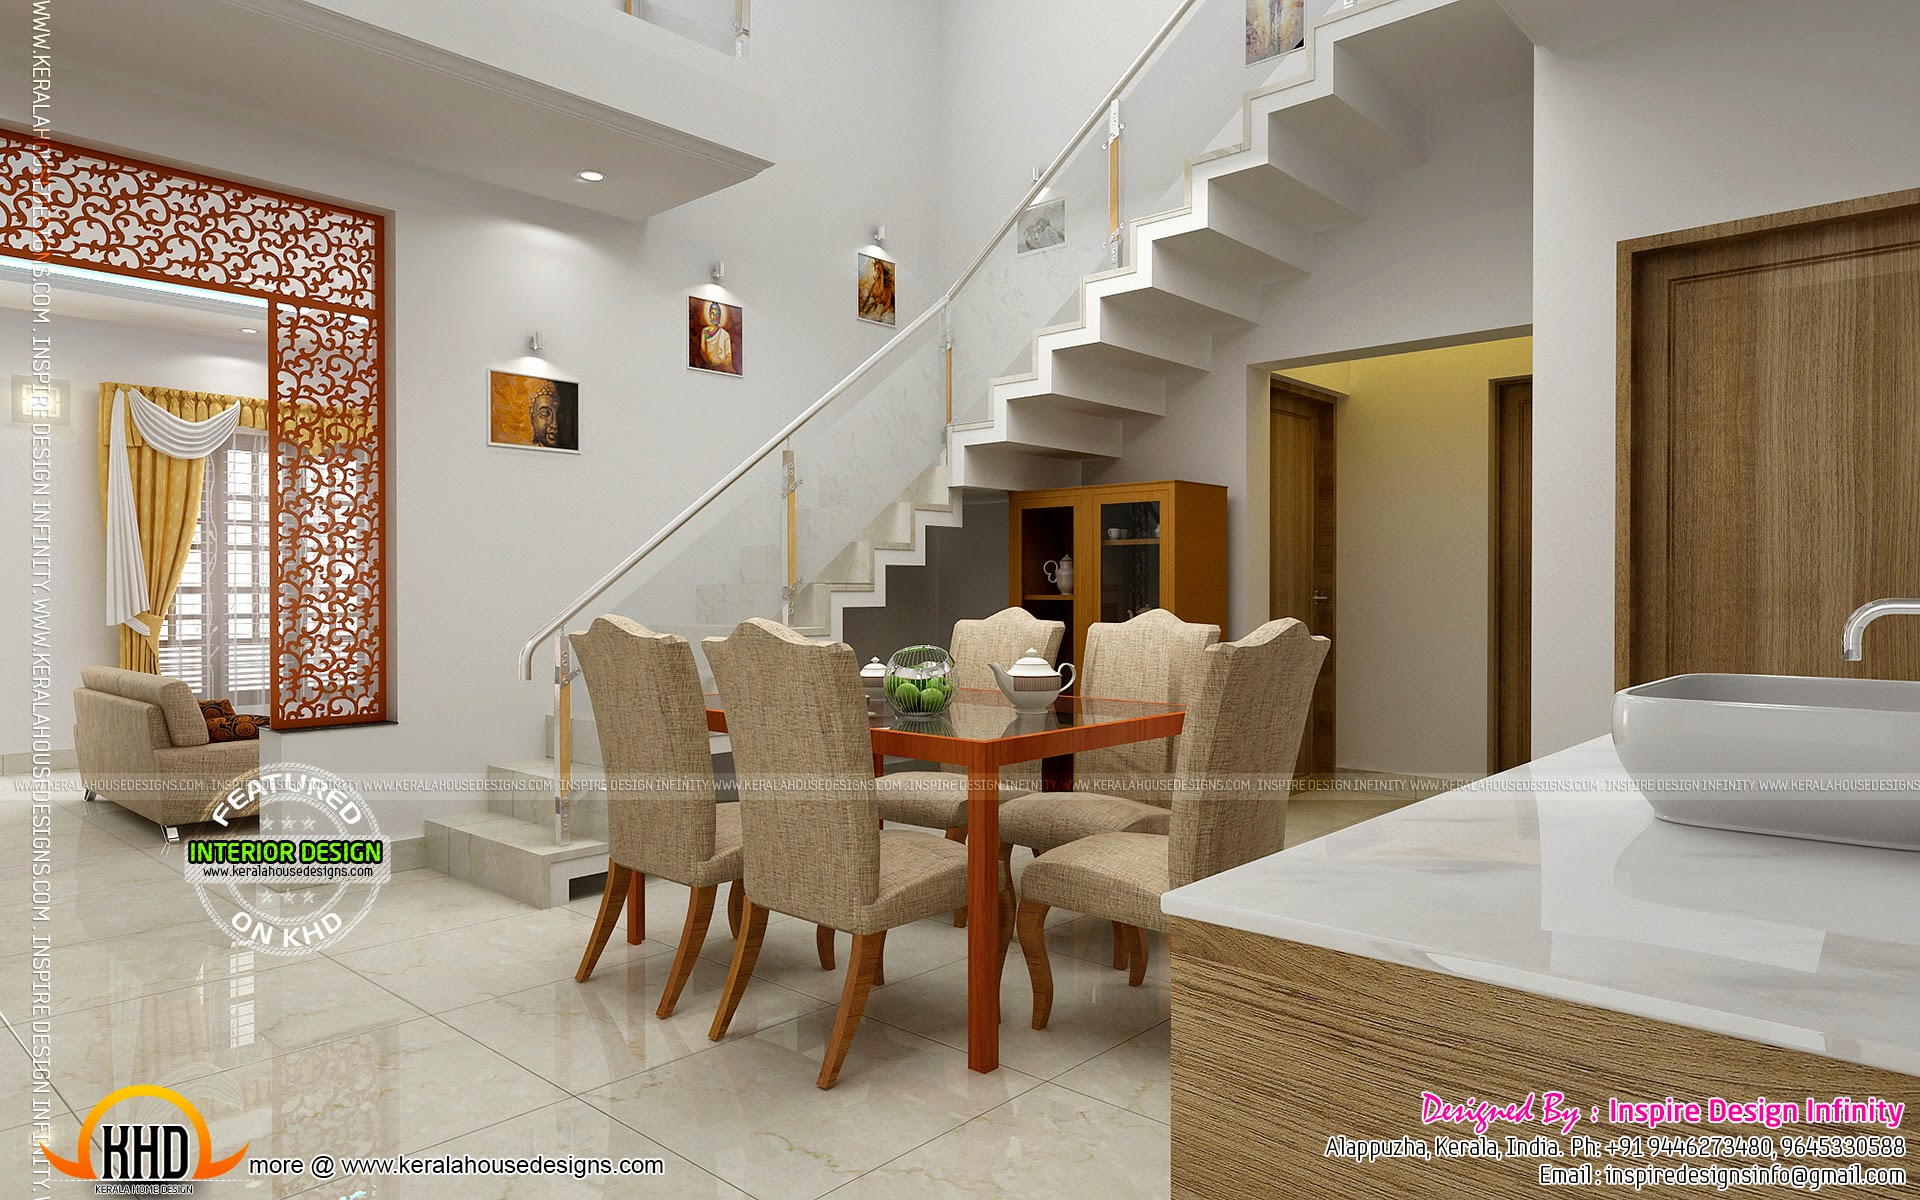 Dining room designs kerala home design and floor plans for Home interior design photo gallery